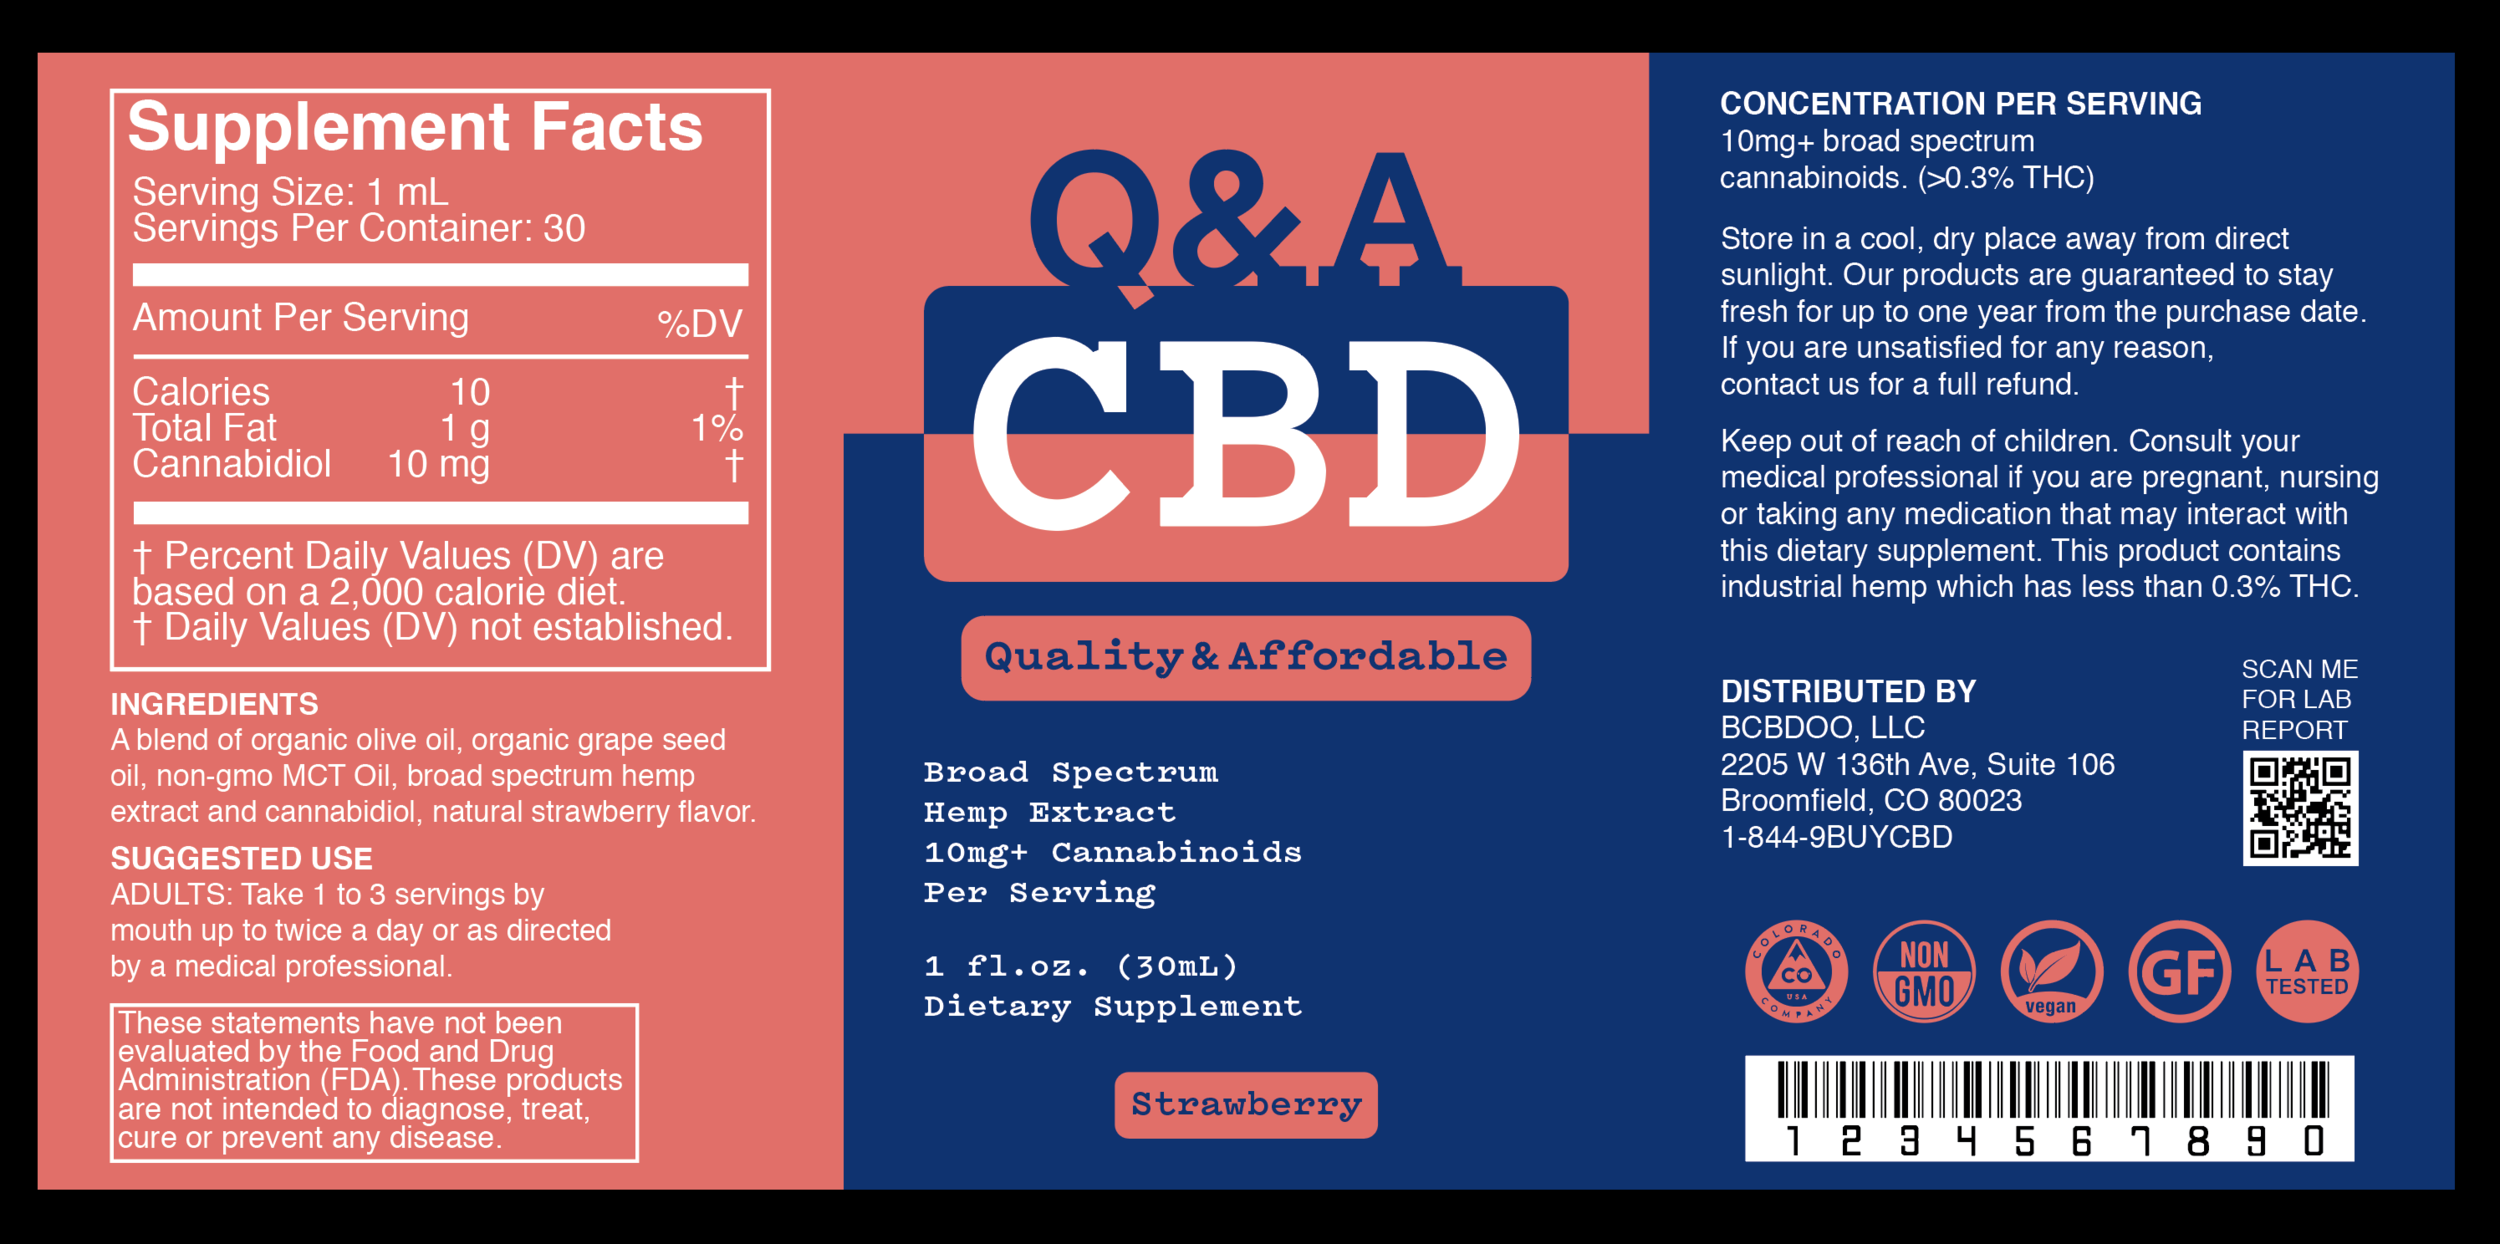 Q&A CBD Strawberry Label.